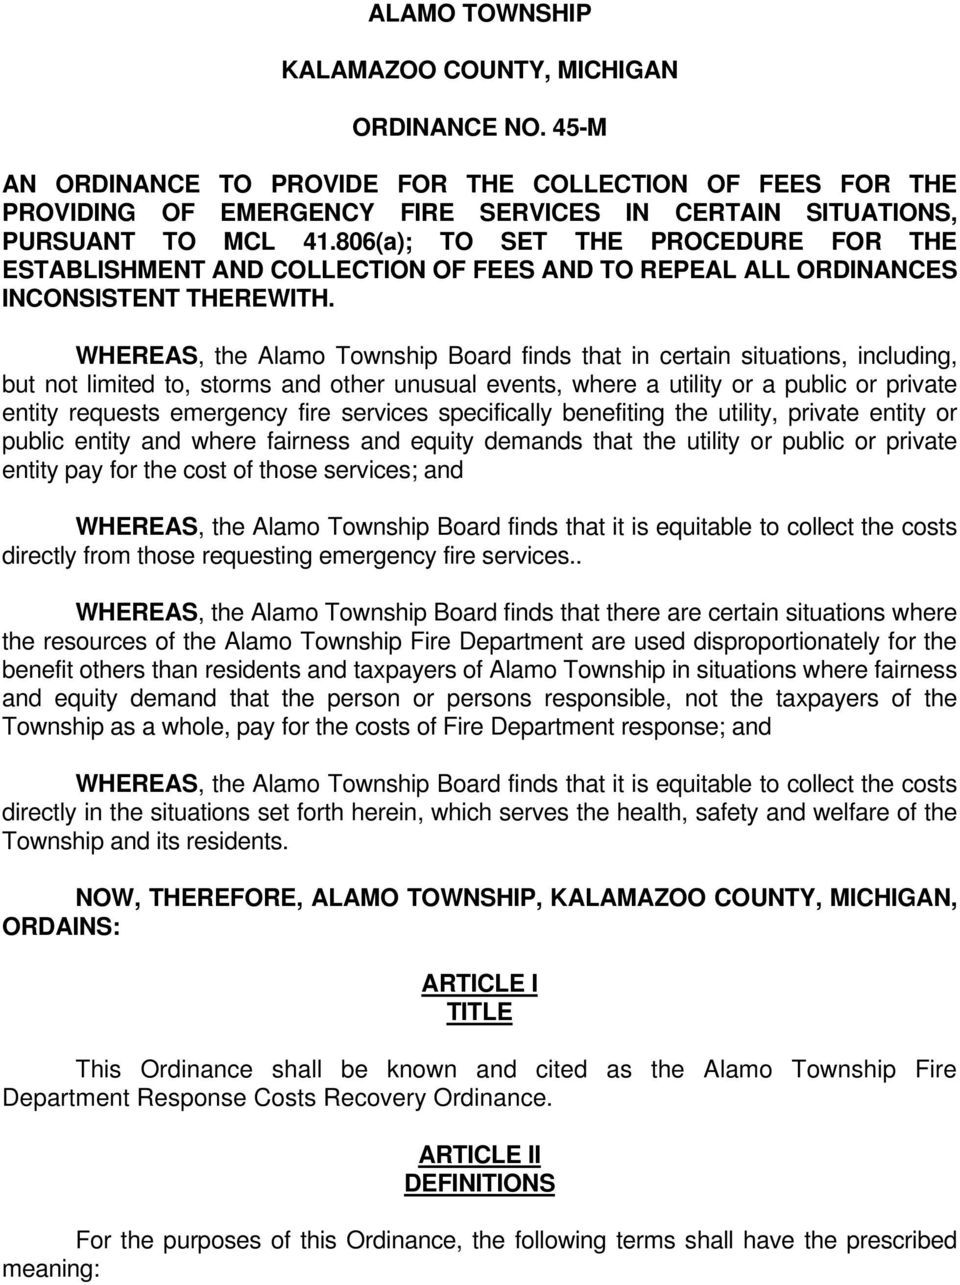 WHEREAS, the Alamo Township Board finds that in certain situations, including, but not limited to, storms and other unusual events, where a utility or a public or private entity requests emergency